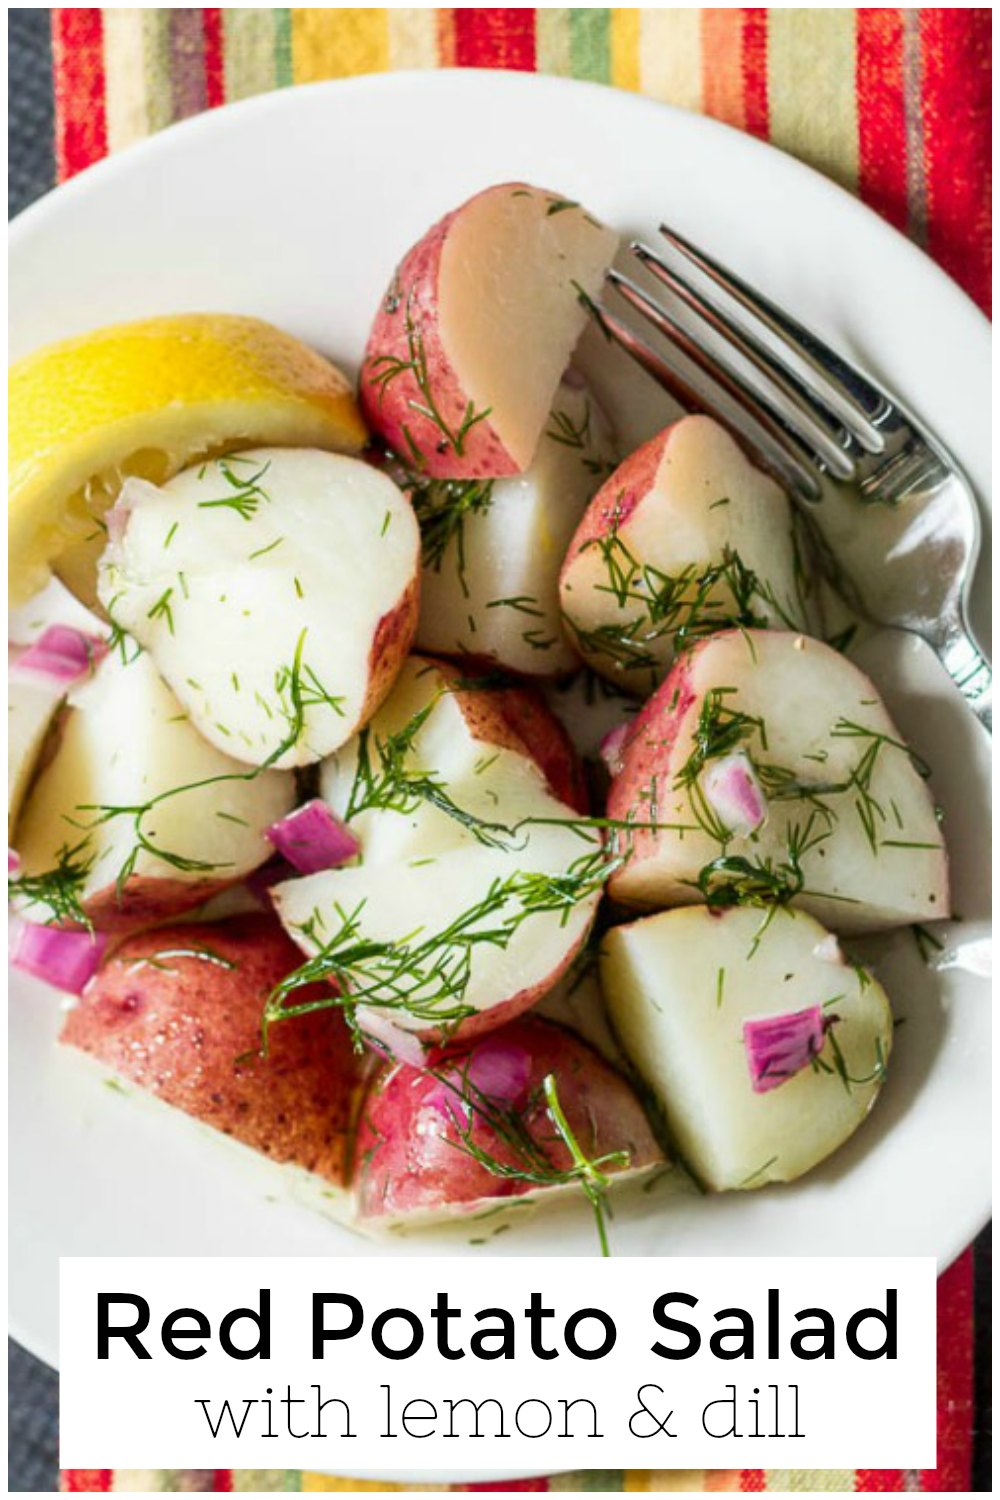 Red potato salad on striped napkin with text overlay